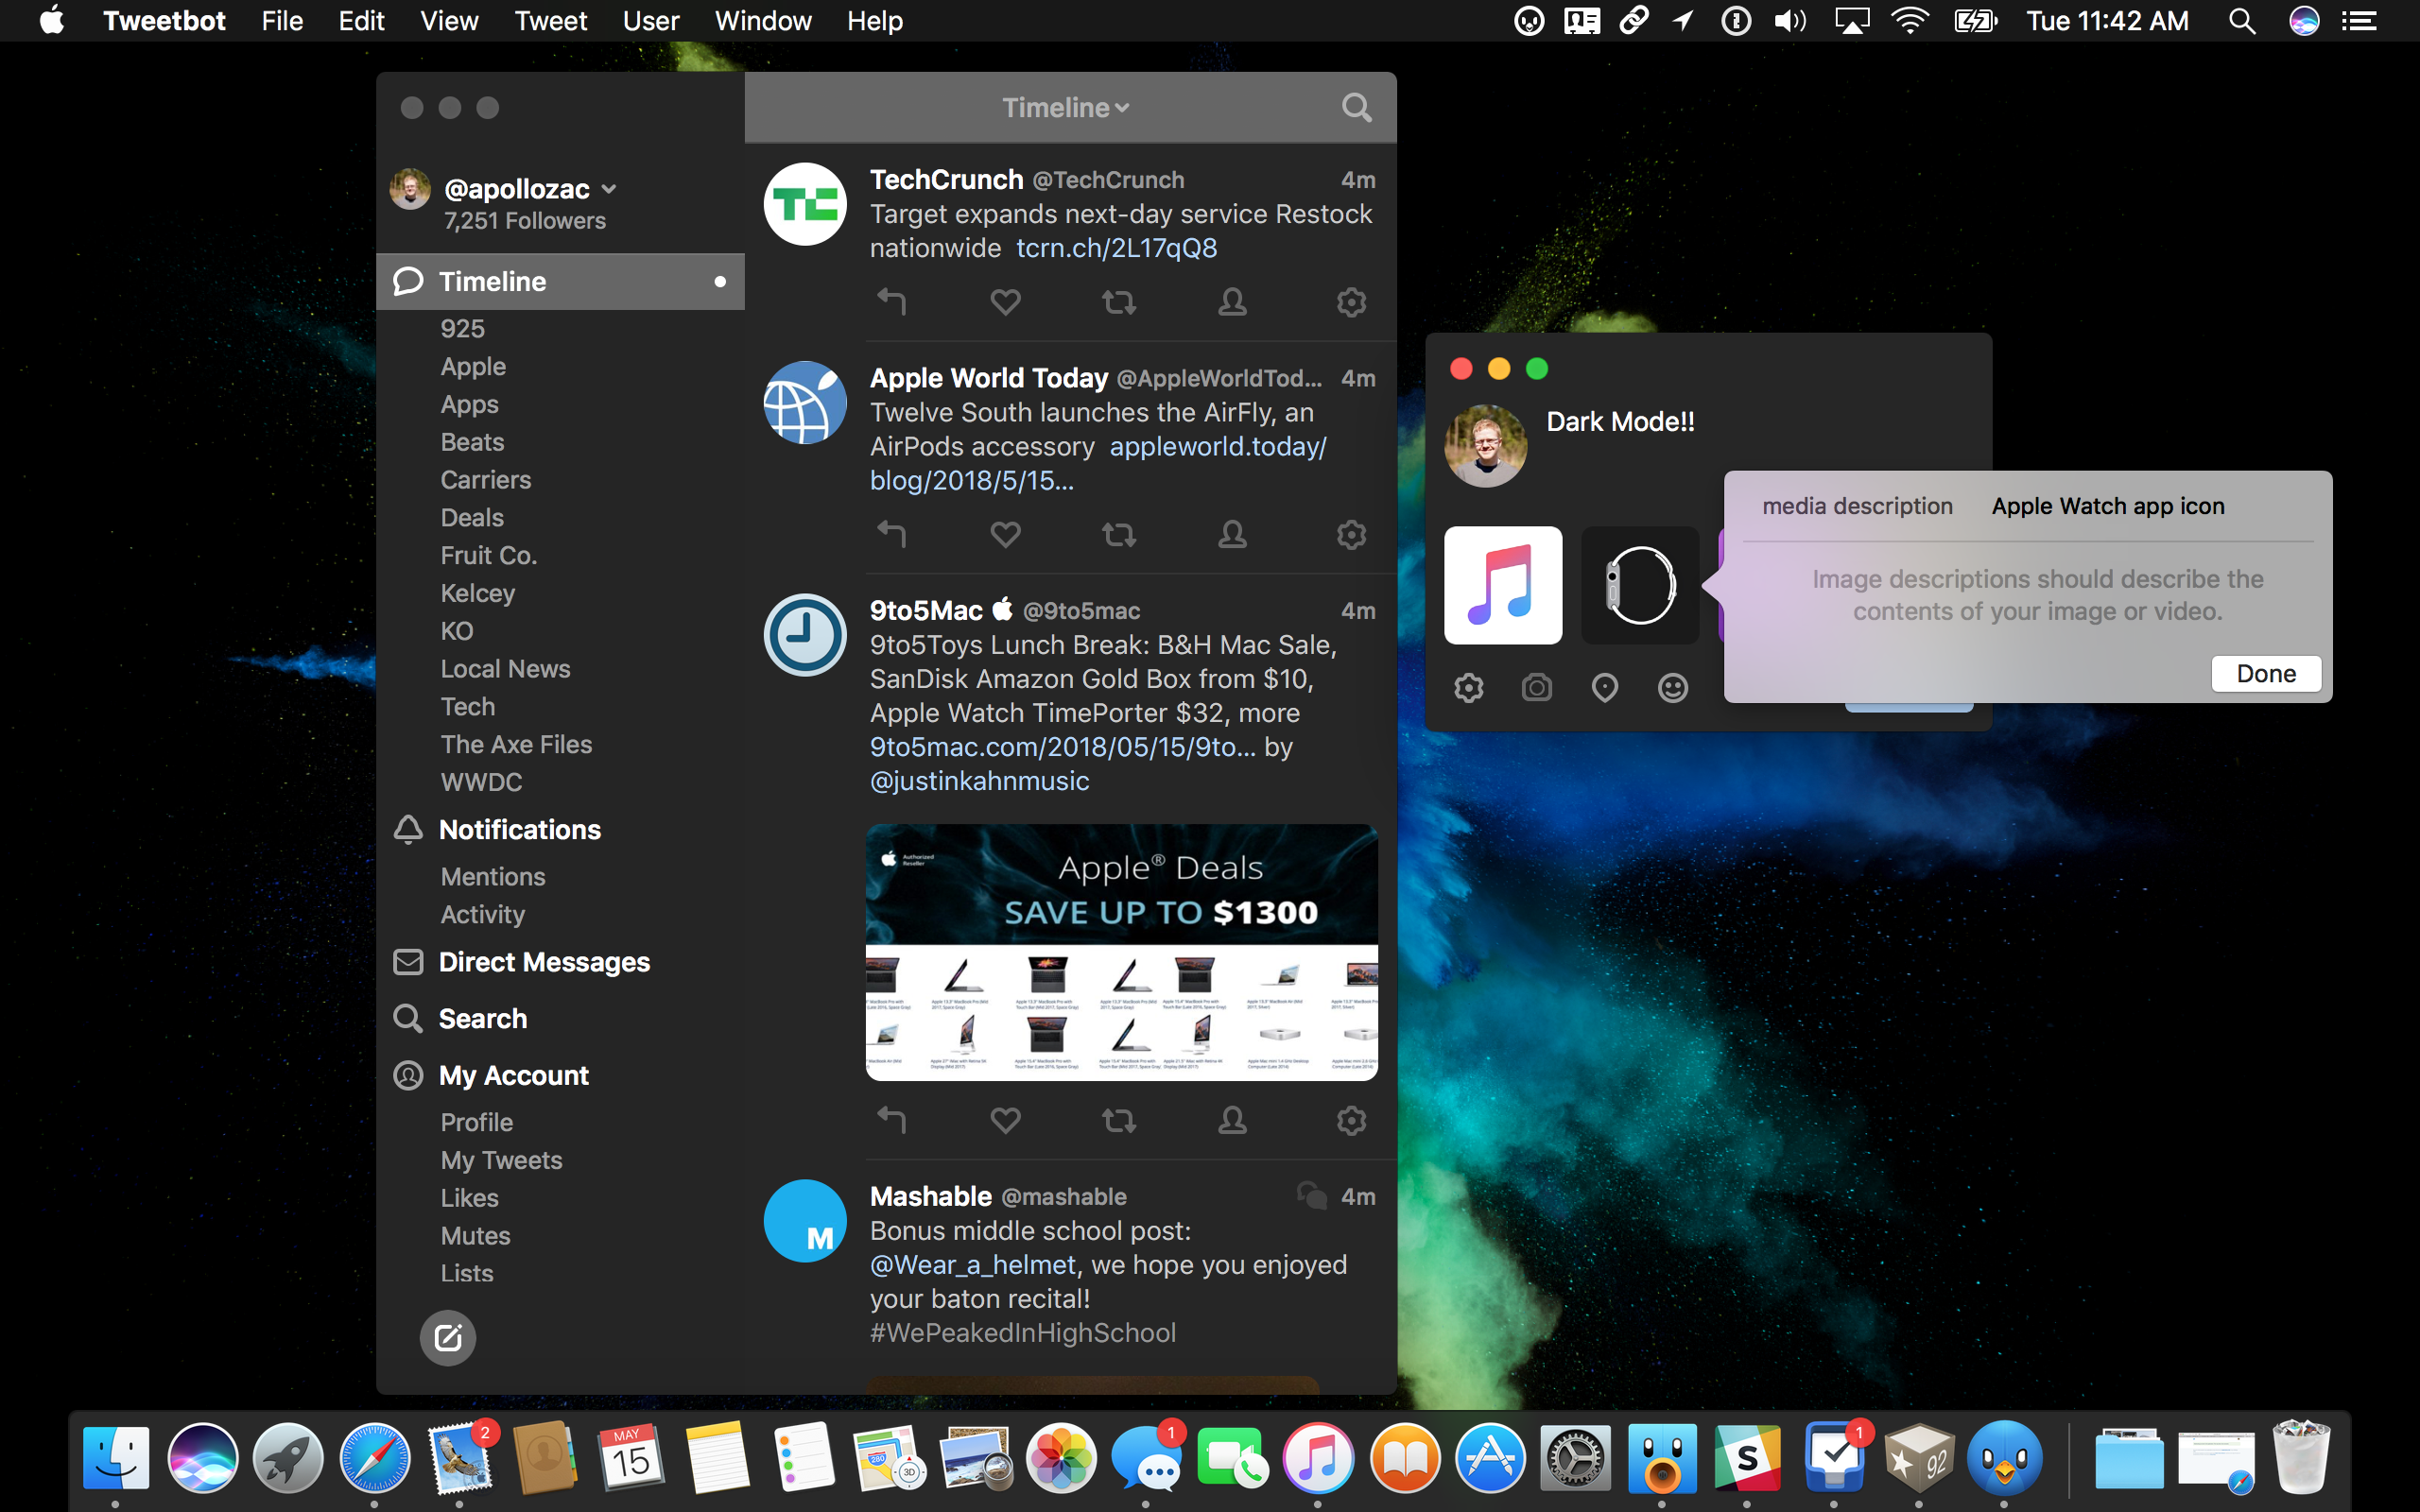 tweetbot 3 for mac